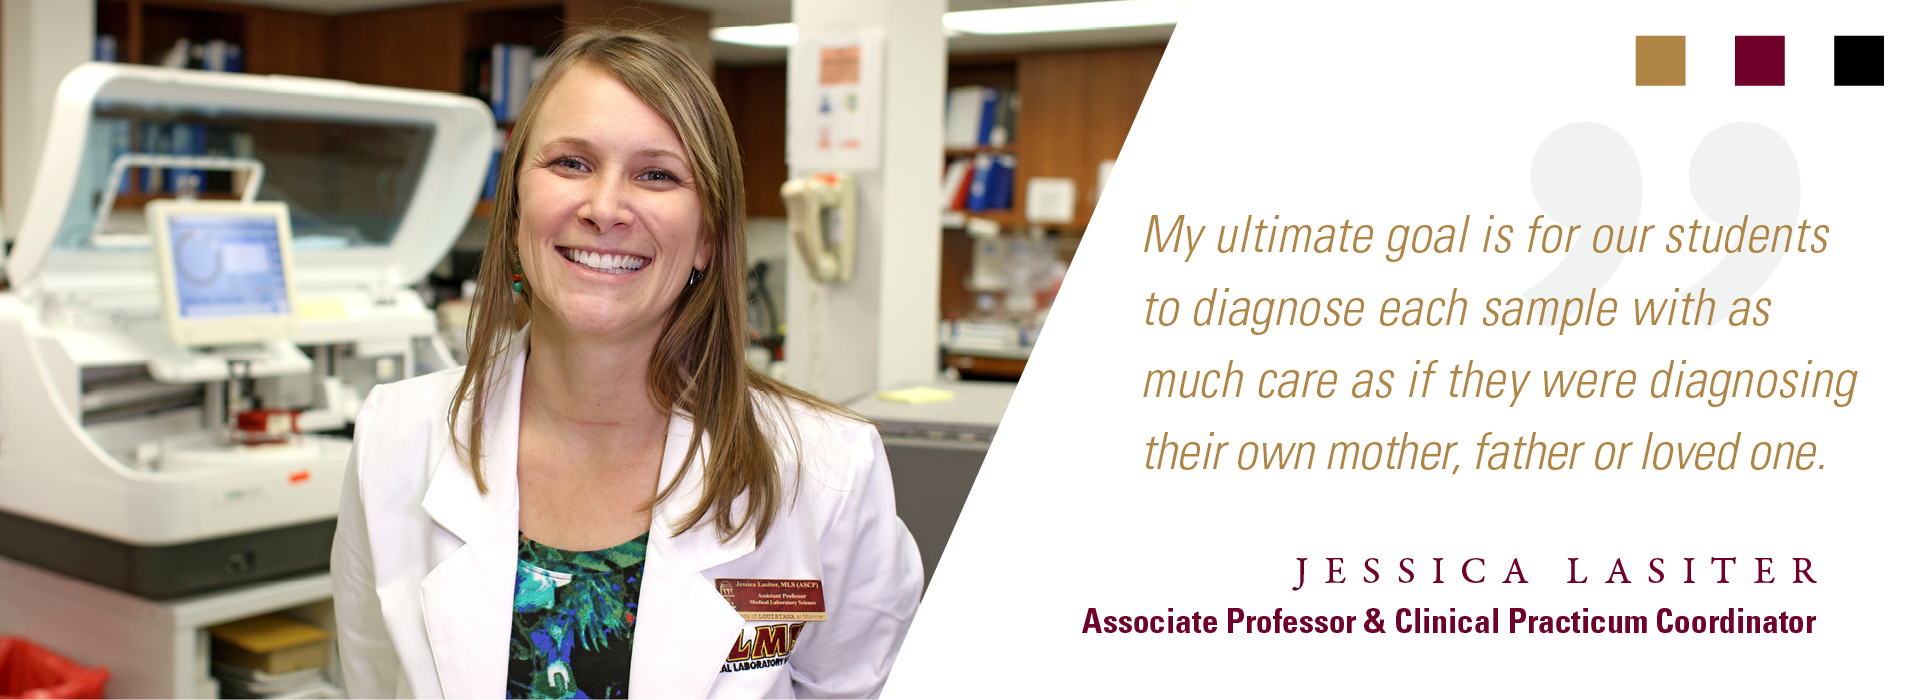 faculty testimonial jessica lasiter